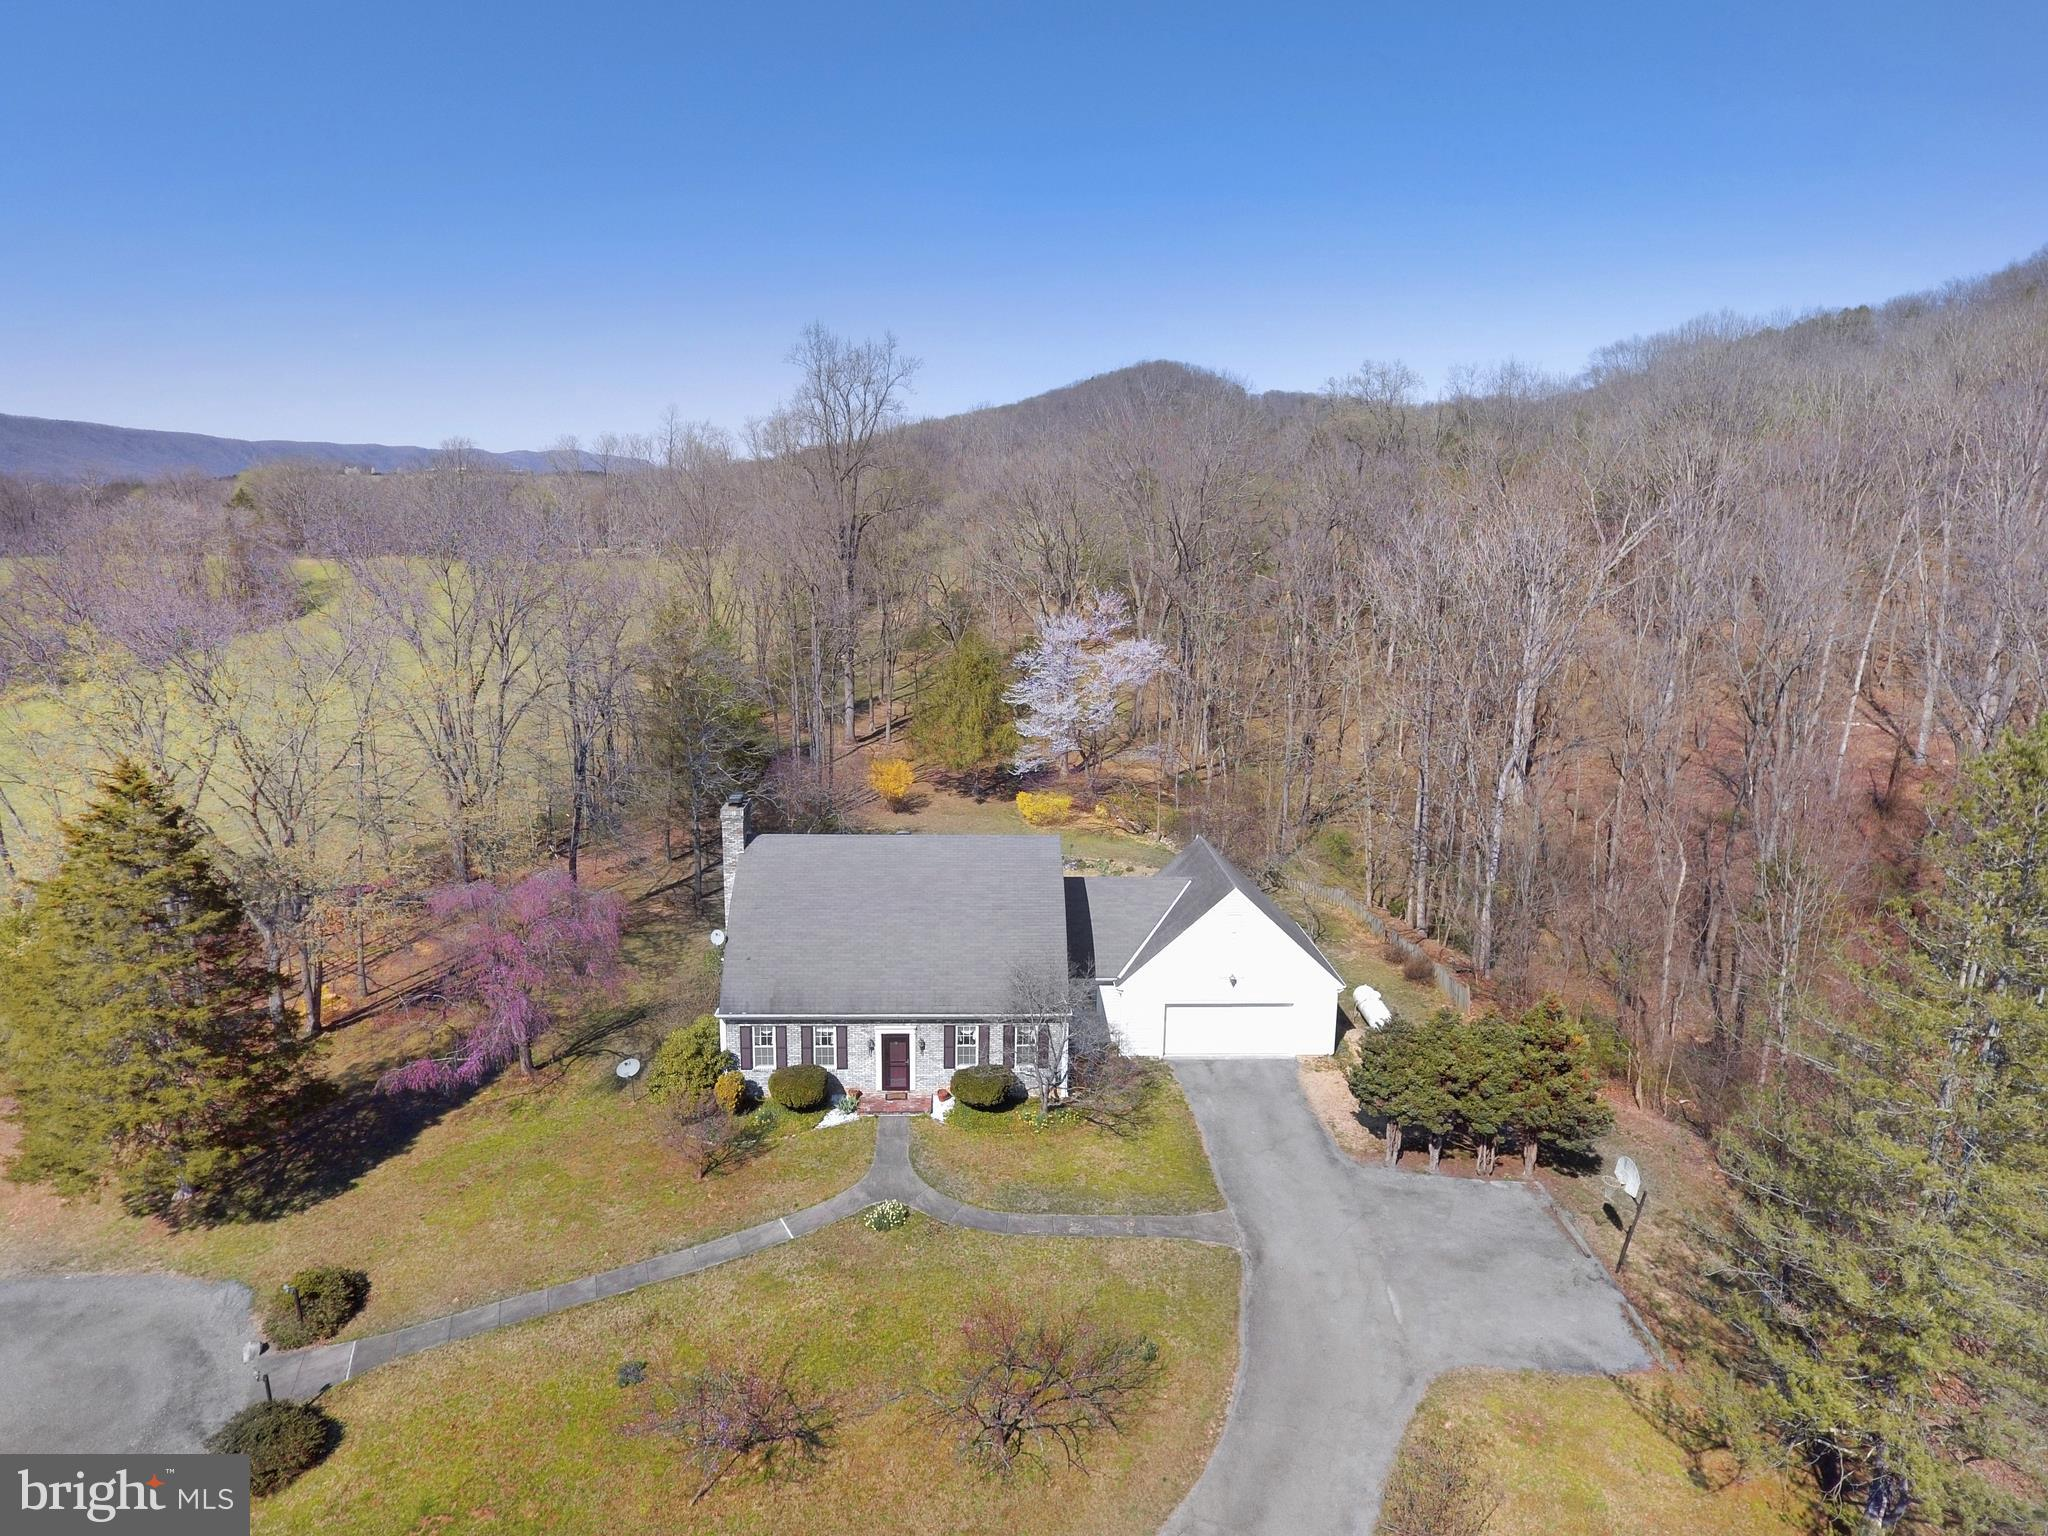 1530 COMPTON HOLLOW ROAD, RILEYVILLE, VA 22650